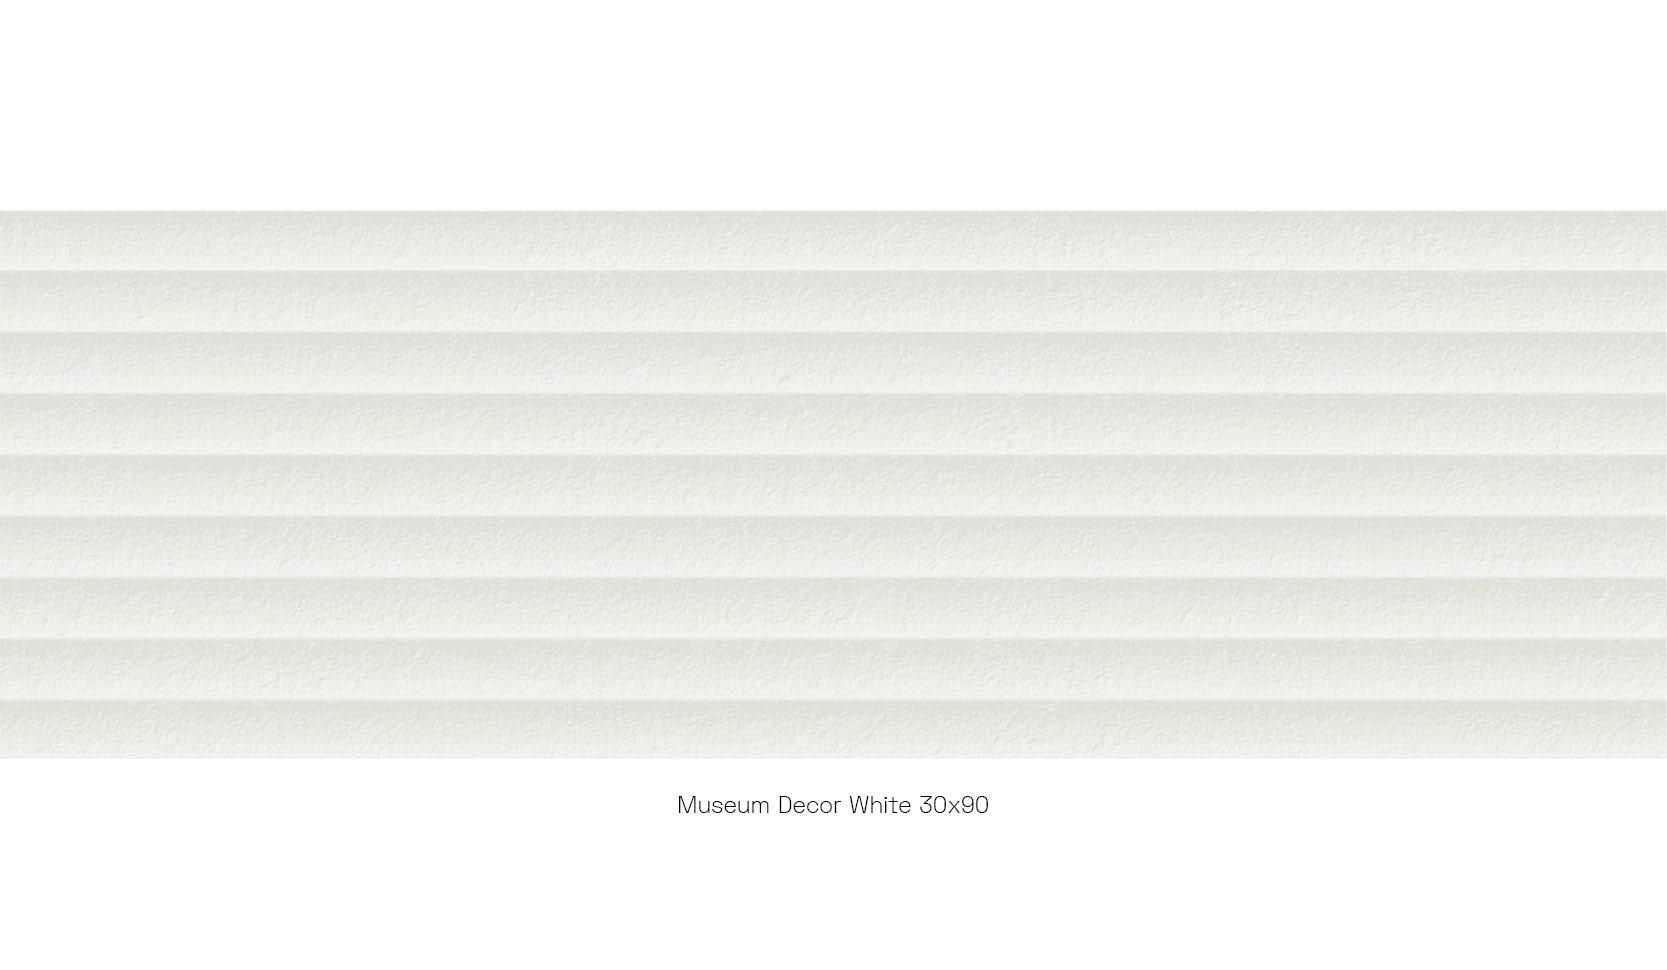 Museum decor white 30 x 90